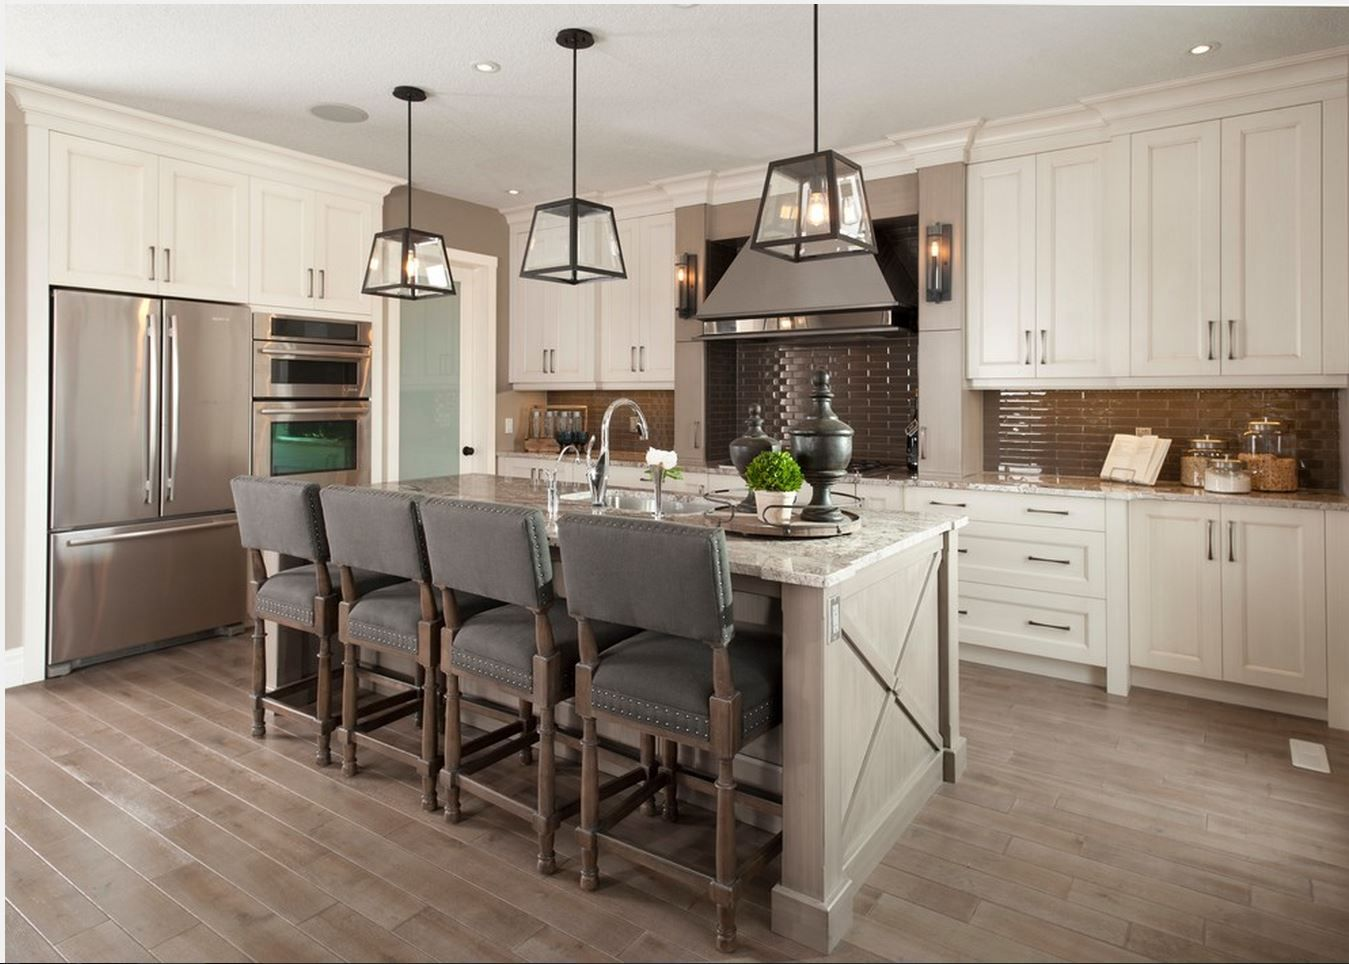 Beautiful Traditional Kitchen Designs Beautiful Traditional Kitchen With Hardware From Berenson's Aspire